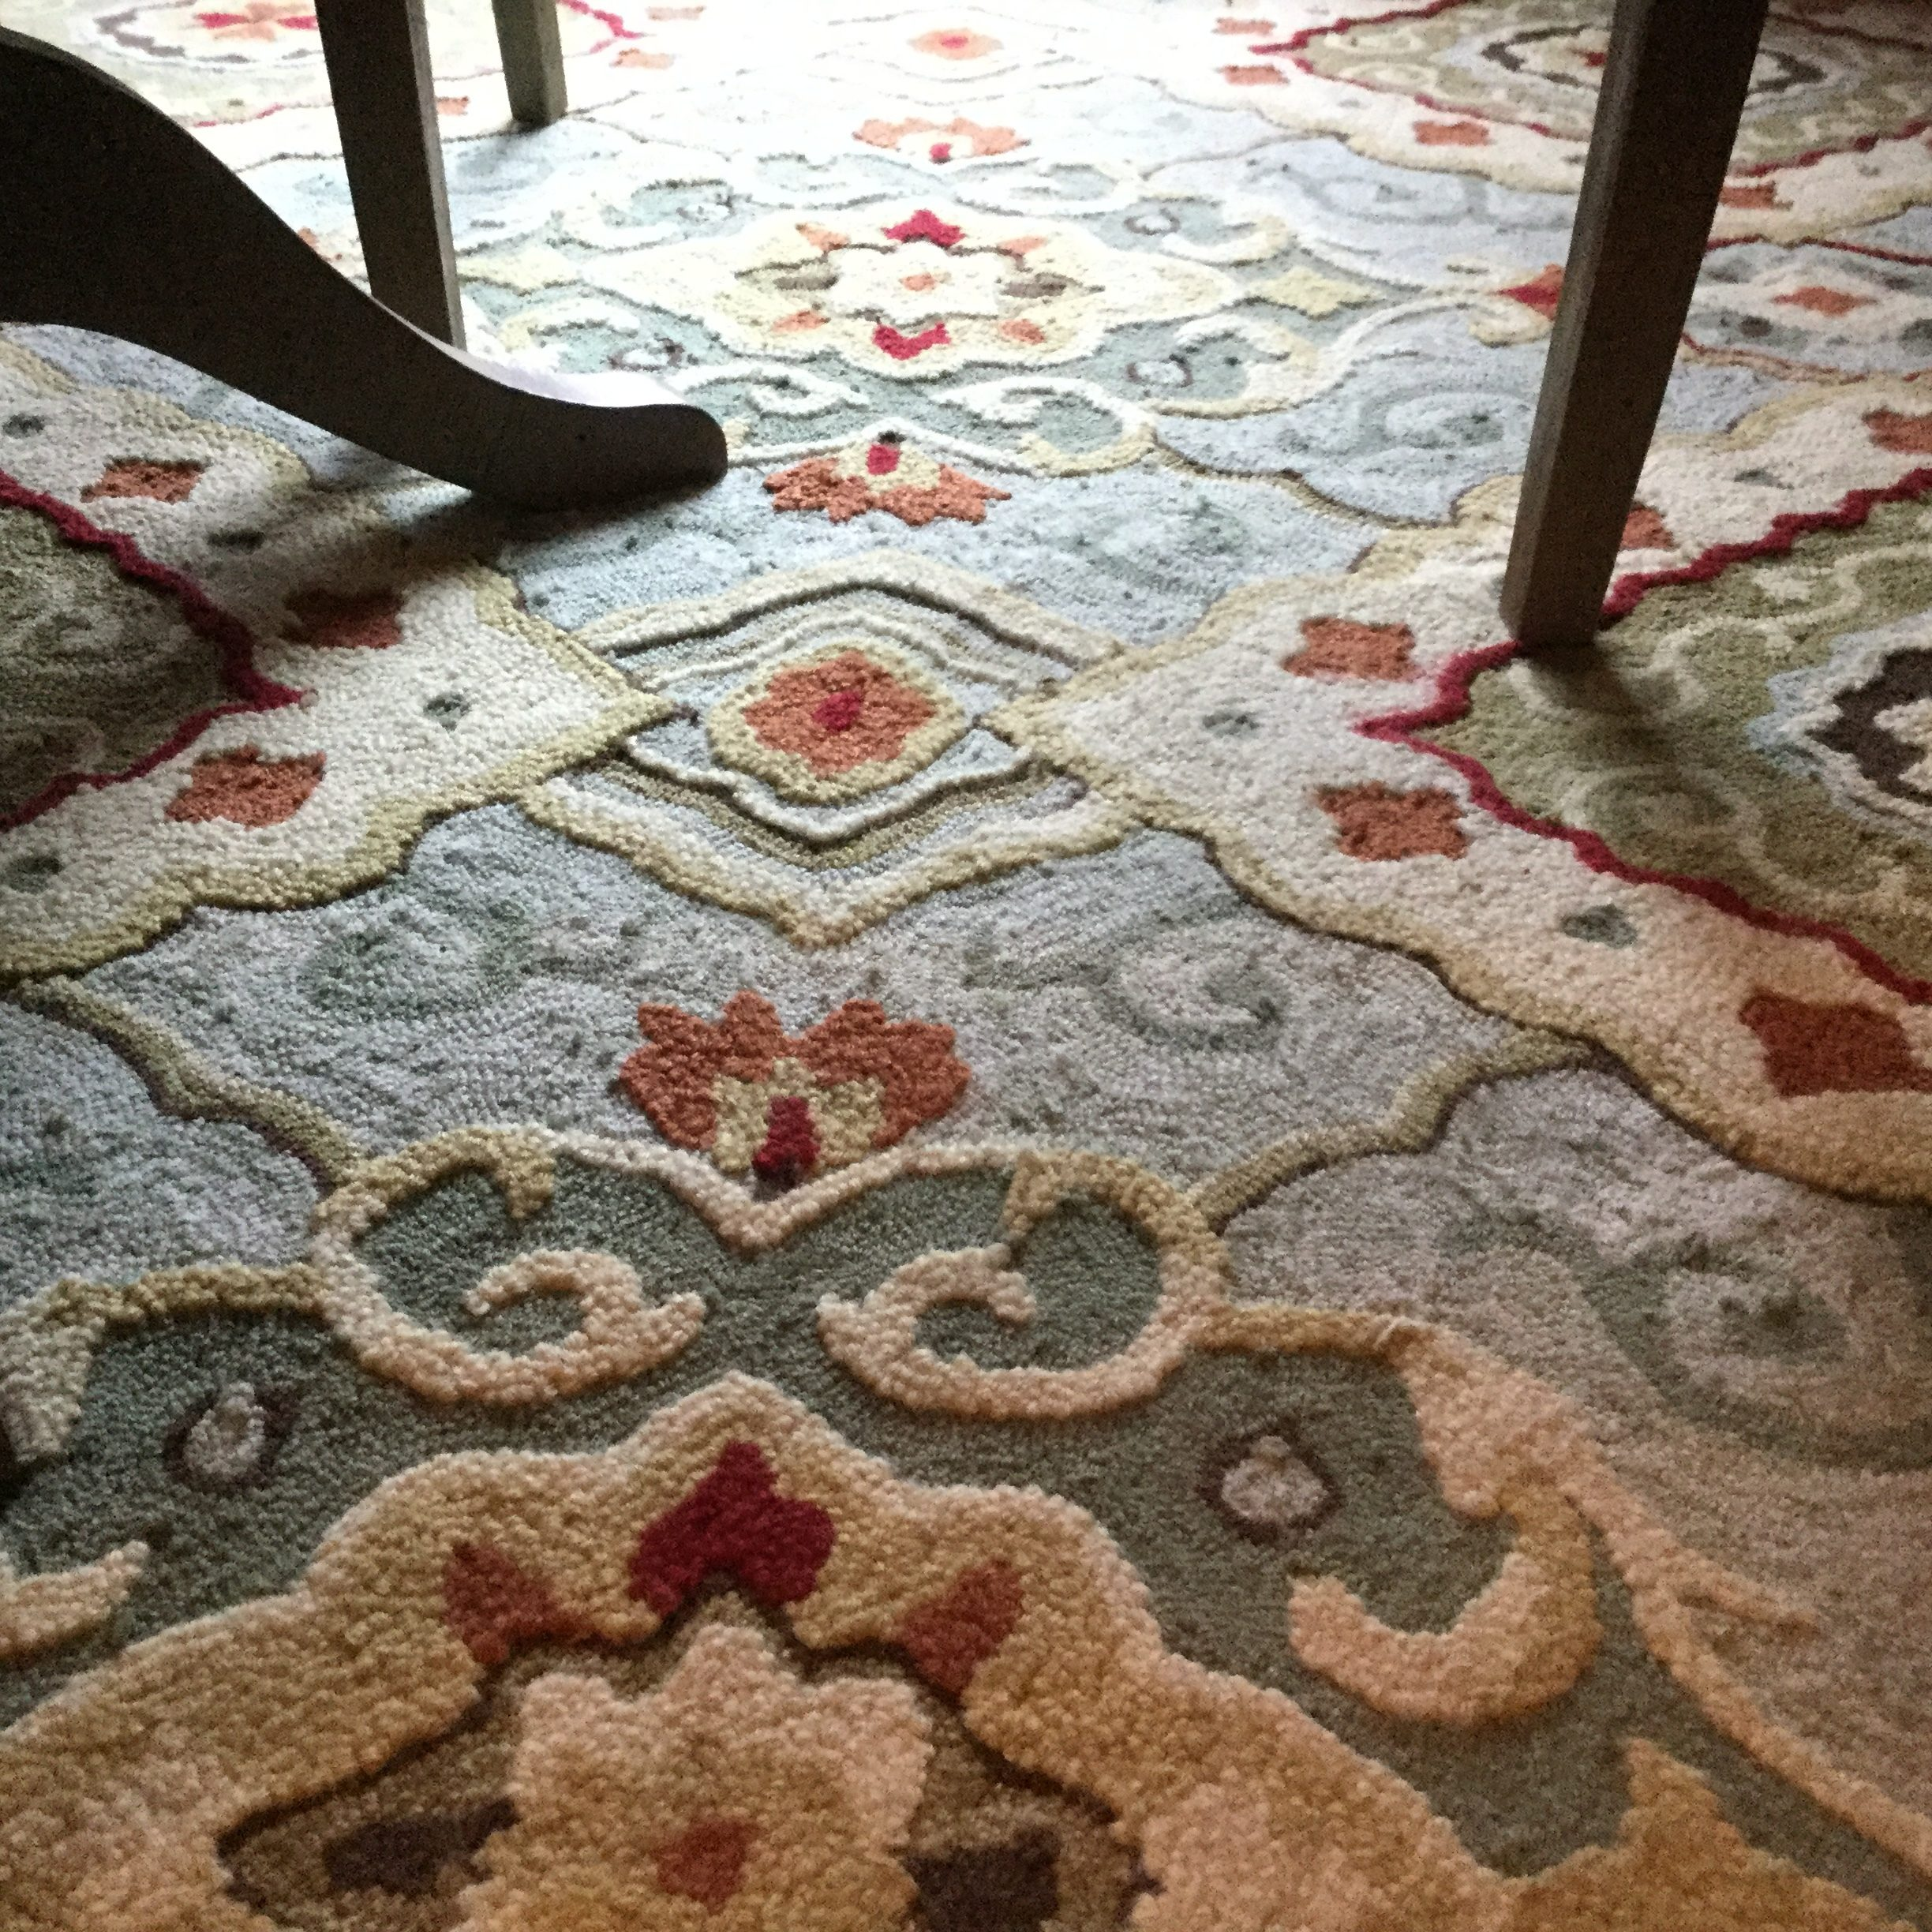 I Bought A Beautiful Area Rug And Two Rug Runners For My Kitchen Remodel.  All Of The Colors Of The Room Came From The Rug. Within 6 Months This Rug  Looks ...